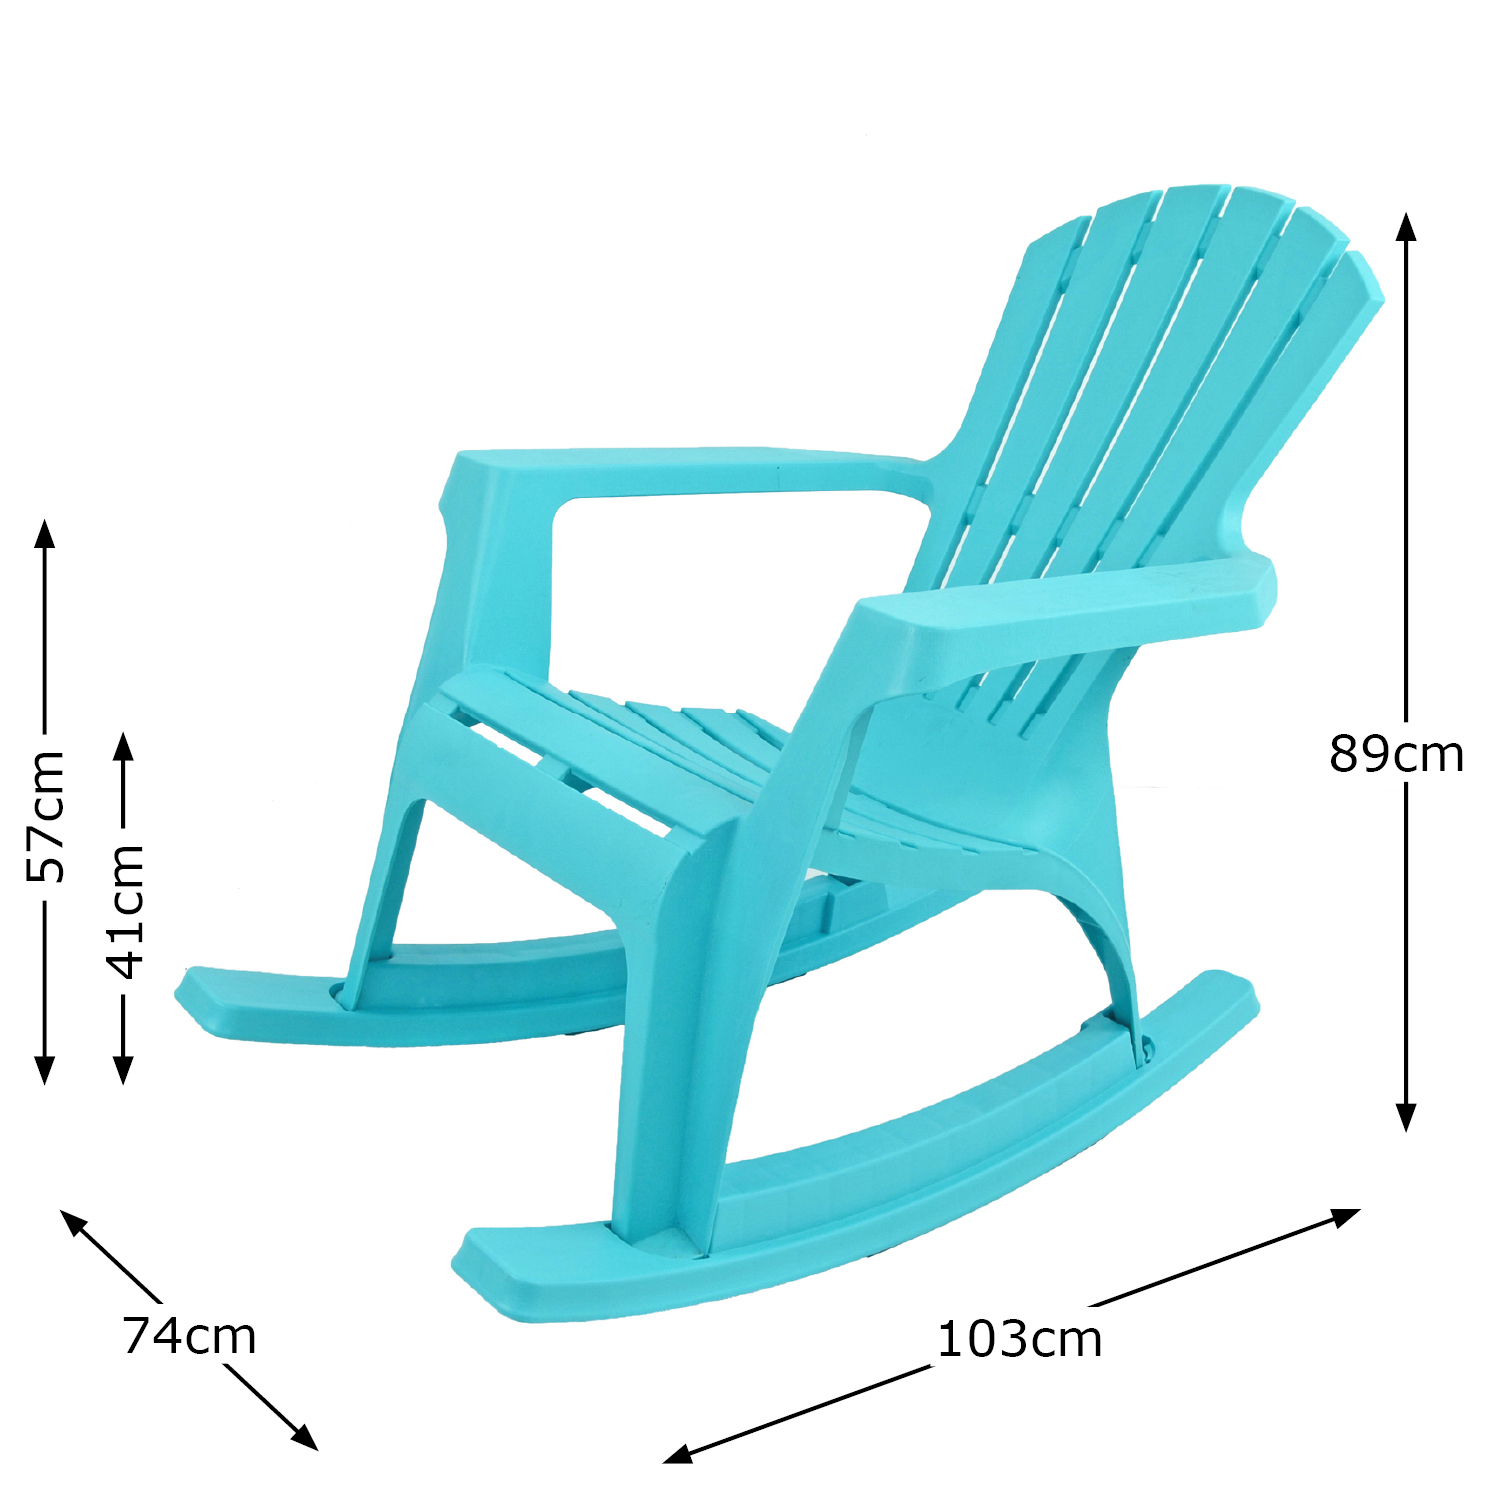 ANDRIA ROCKING CHAIR BLUE DIMENSION MS1